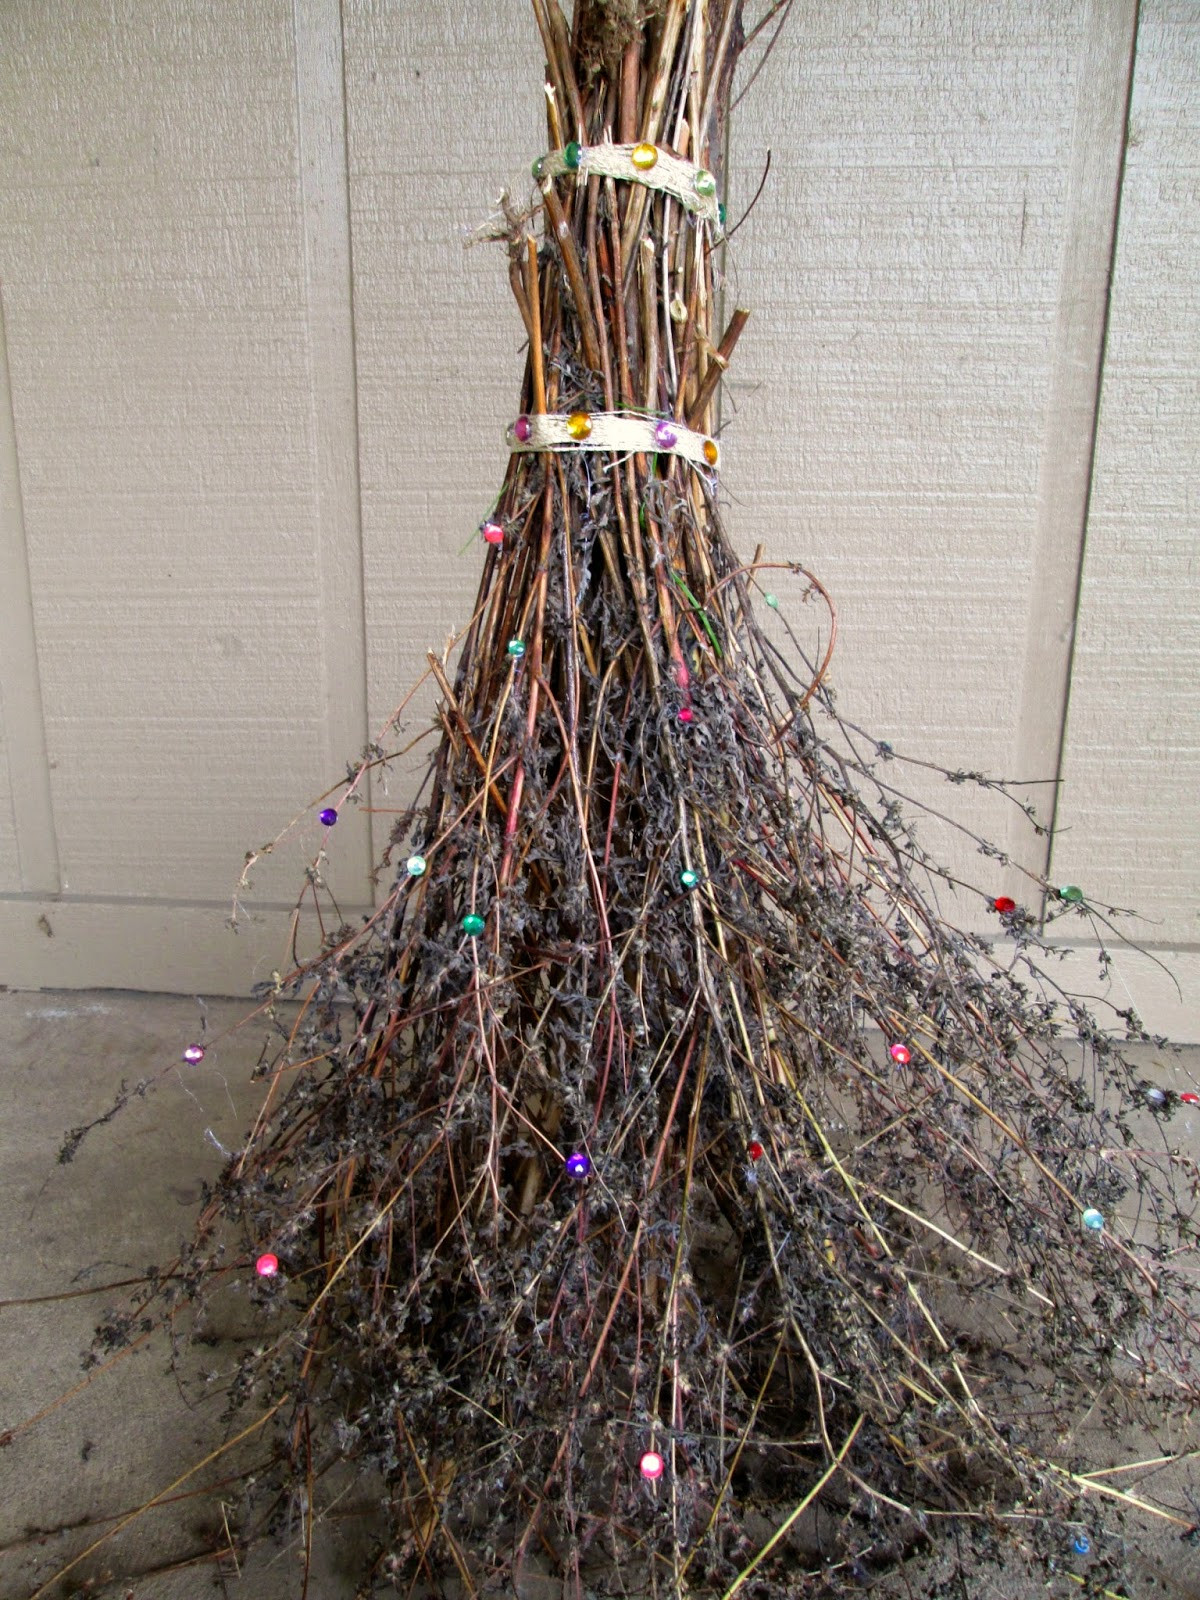 Best ideas about DIY Witch Broomstick . Save or Pin THE REHOMESTEADERS DIY Sparkly Witch Broom Now.